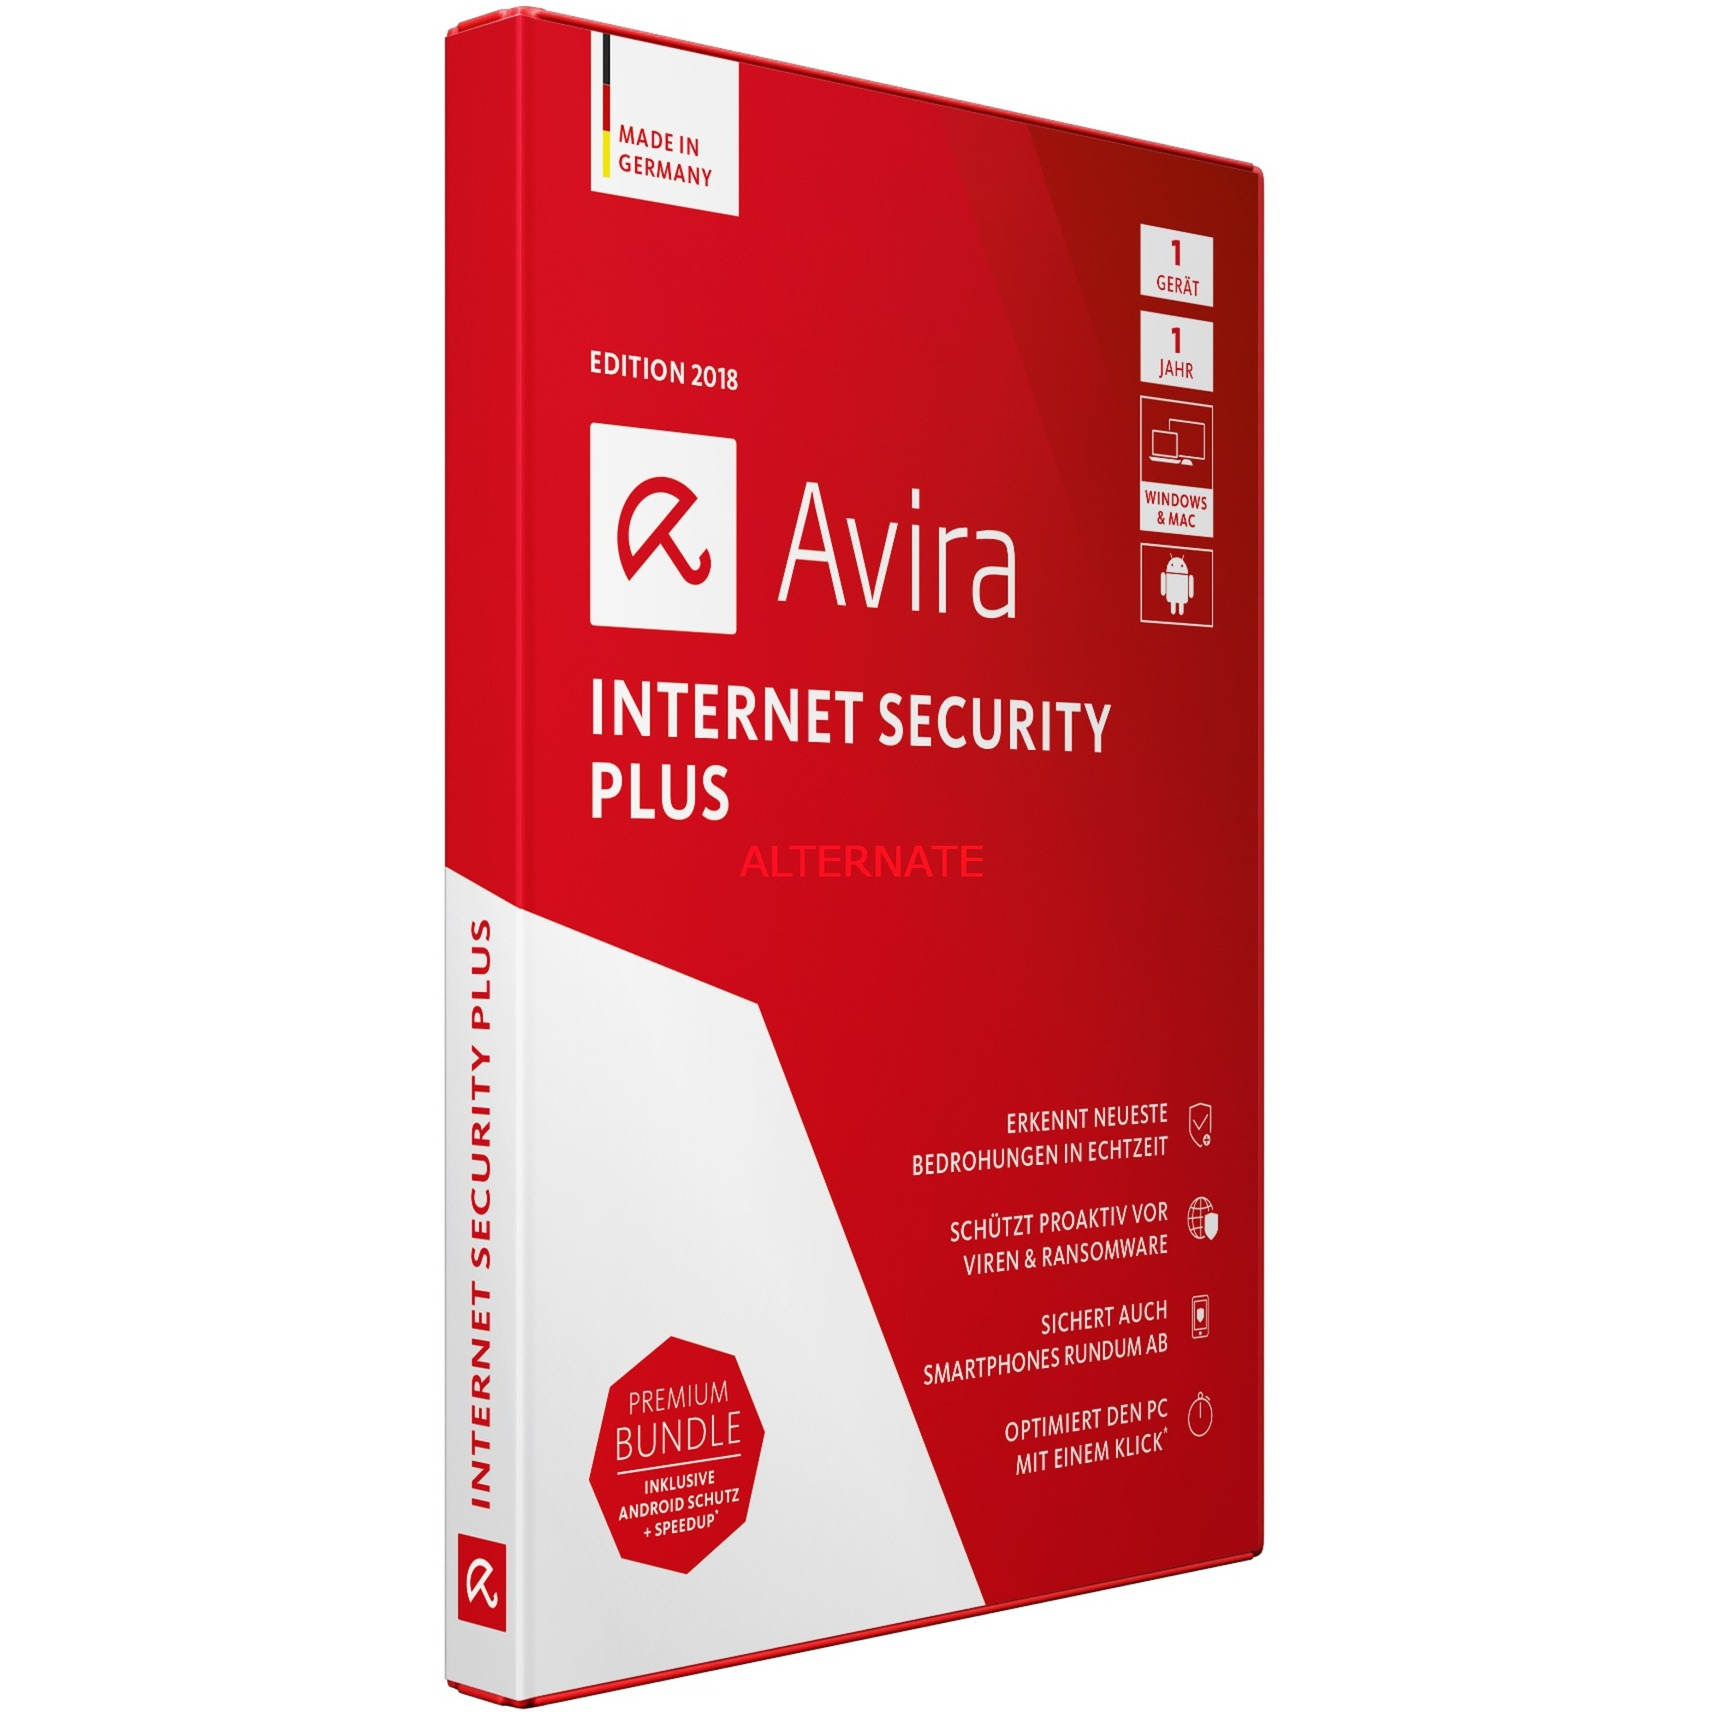 Internet Security Plus 2018 1usuario(s) Full license Alemán, Software